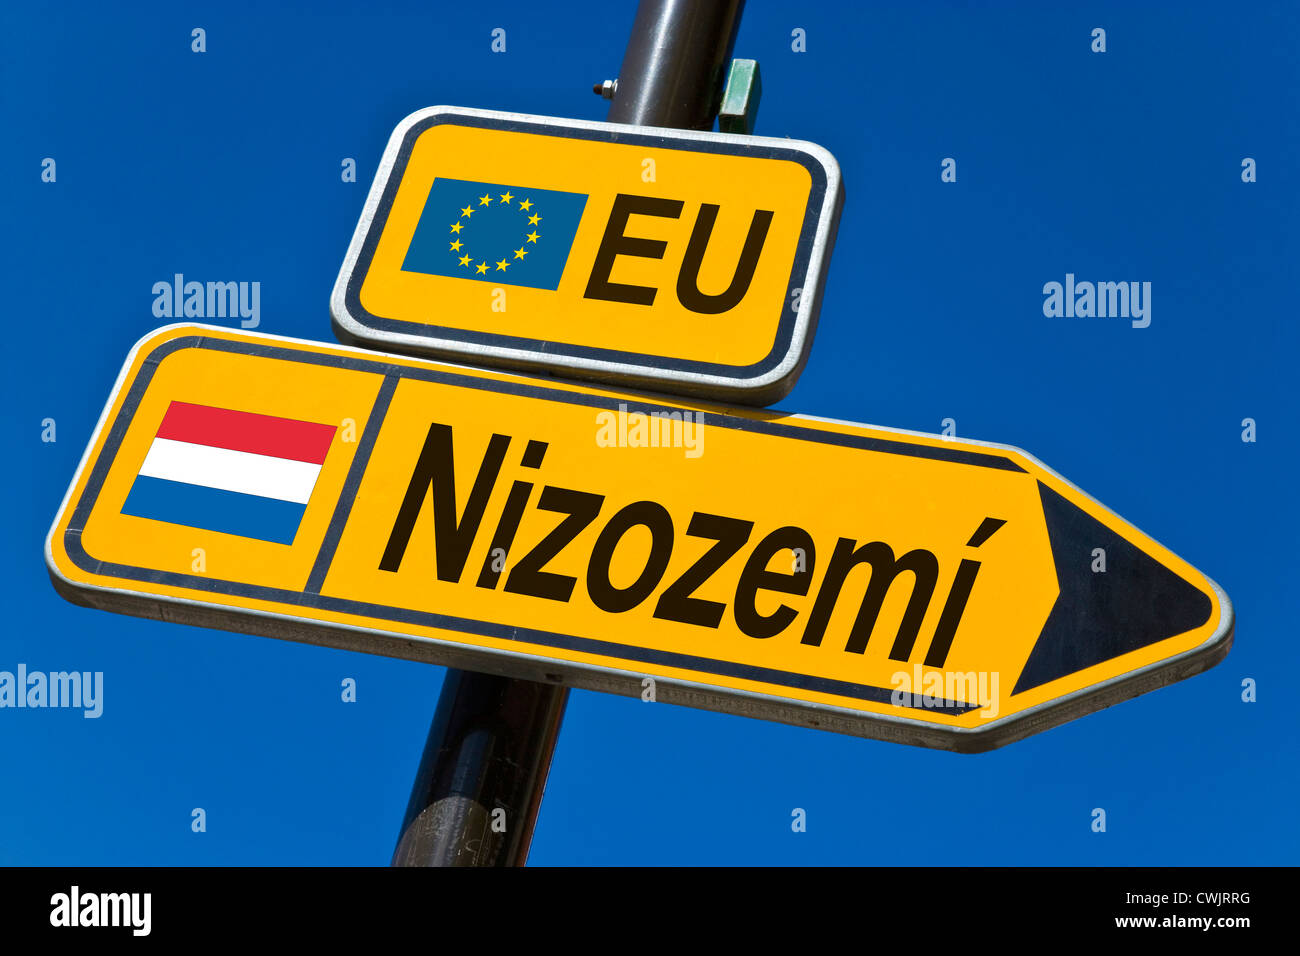 European Union and flag of  Netherlands - Stock Image